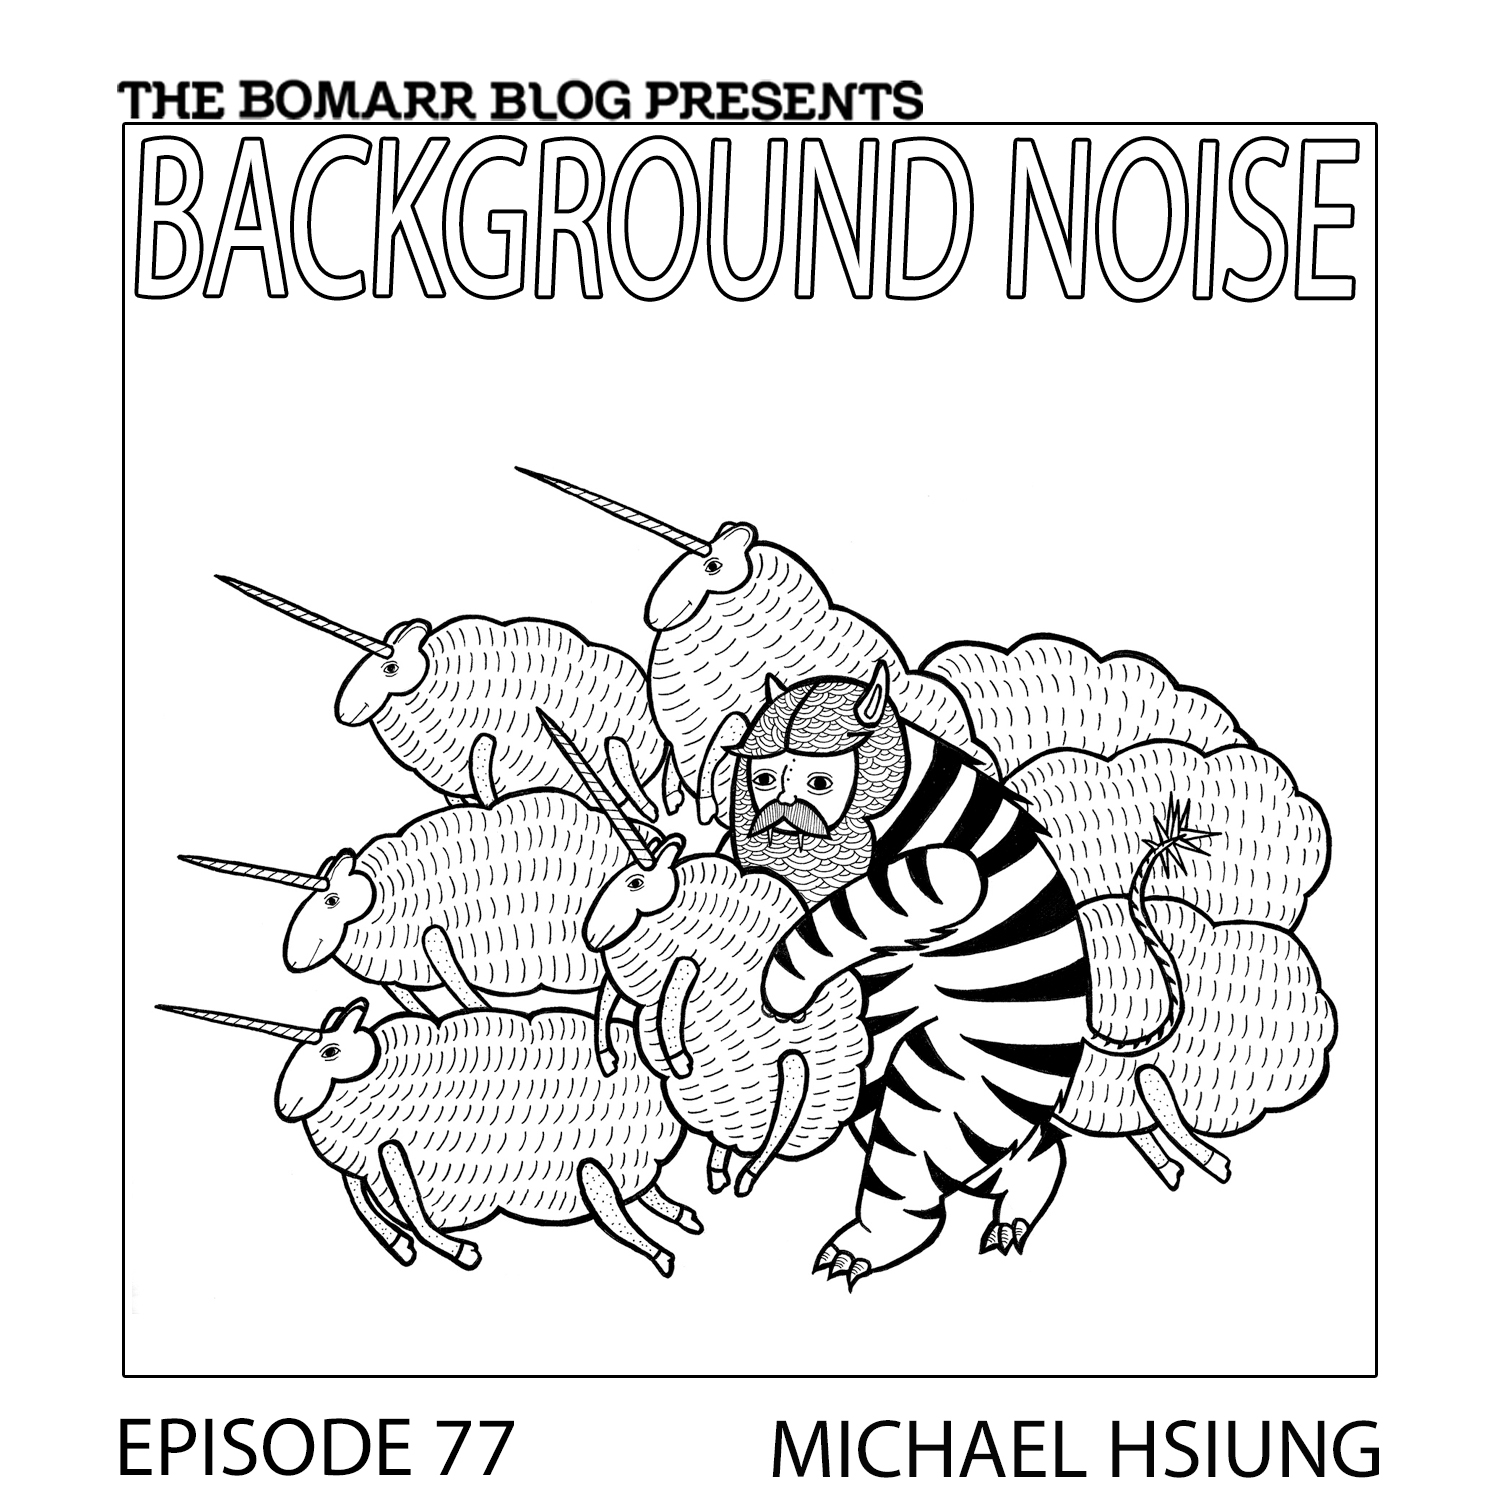 THE BACKGROUND NOISE PODCAST SERIES FOCUSES ON THE MUSIC THAT ARTISTS LISTEN TO WHEN THEY WORK, WHAT MUSIC INSPIRES THEM, OR JUST MUSIC THEY LIKE. THIS WEEK, IN EPISODE 77, THE FOCUS IS ON ARTIST MICHAEL HSIUNG.